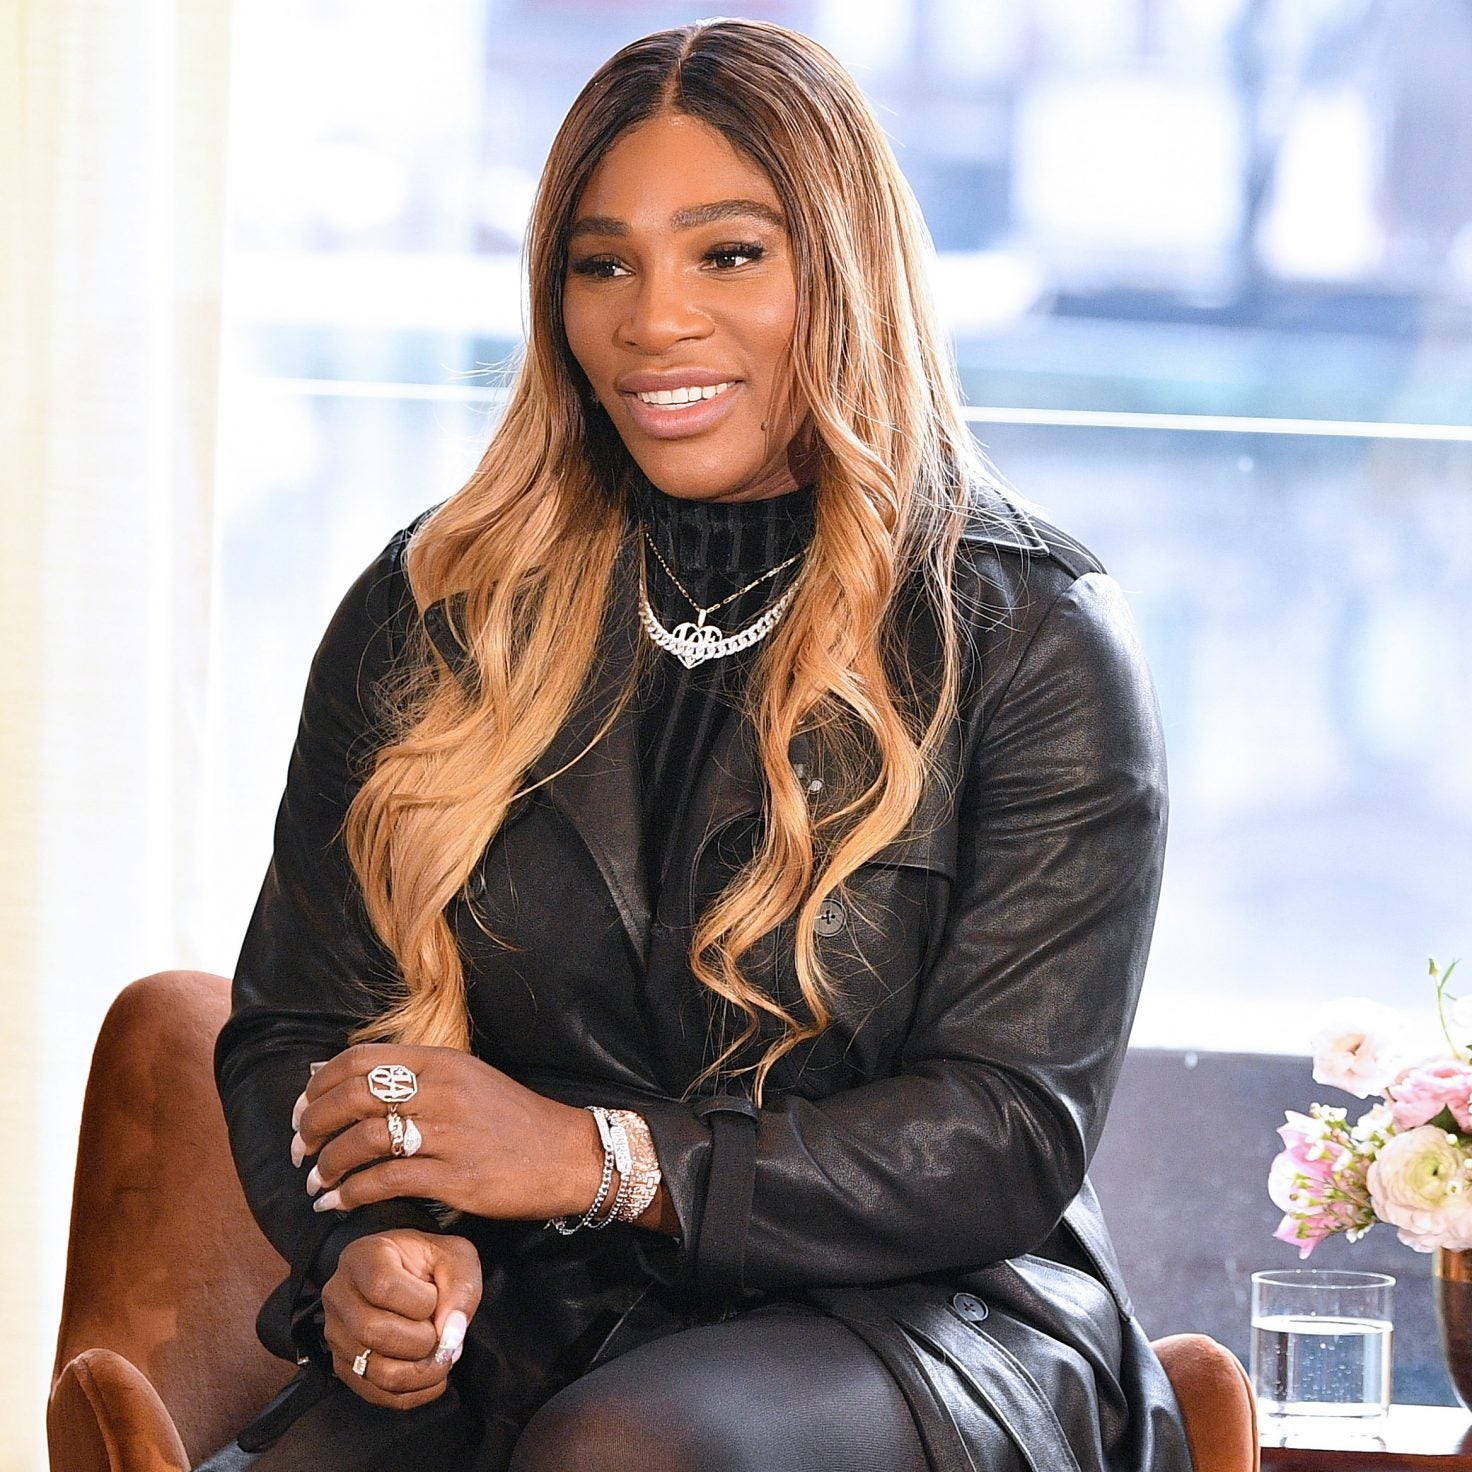 Serena Williams Just Gave A Word All Working Moms Can Relate To